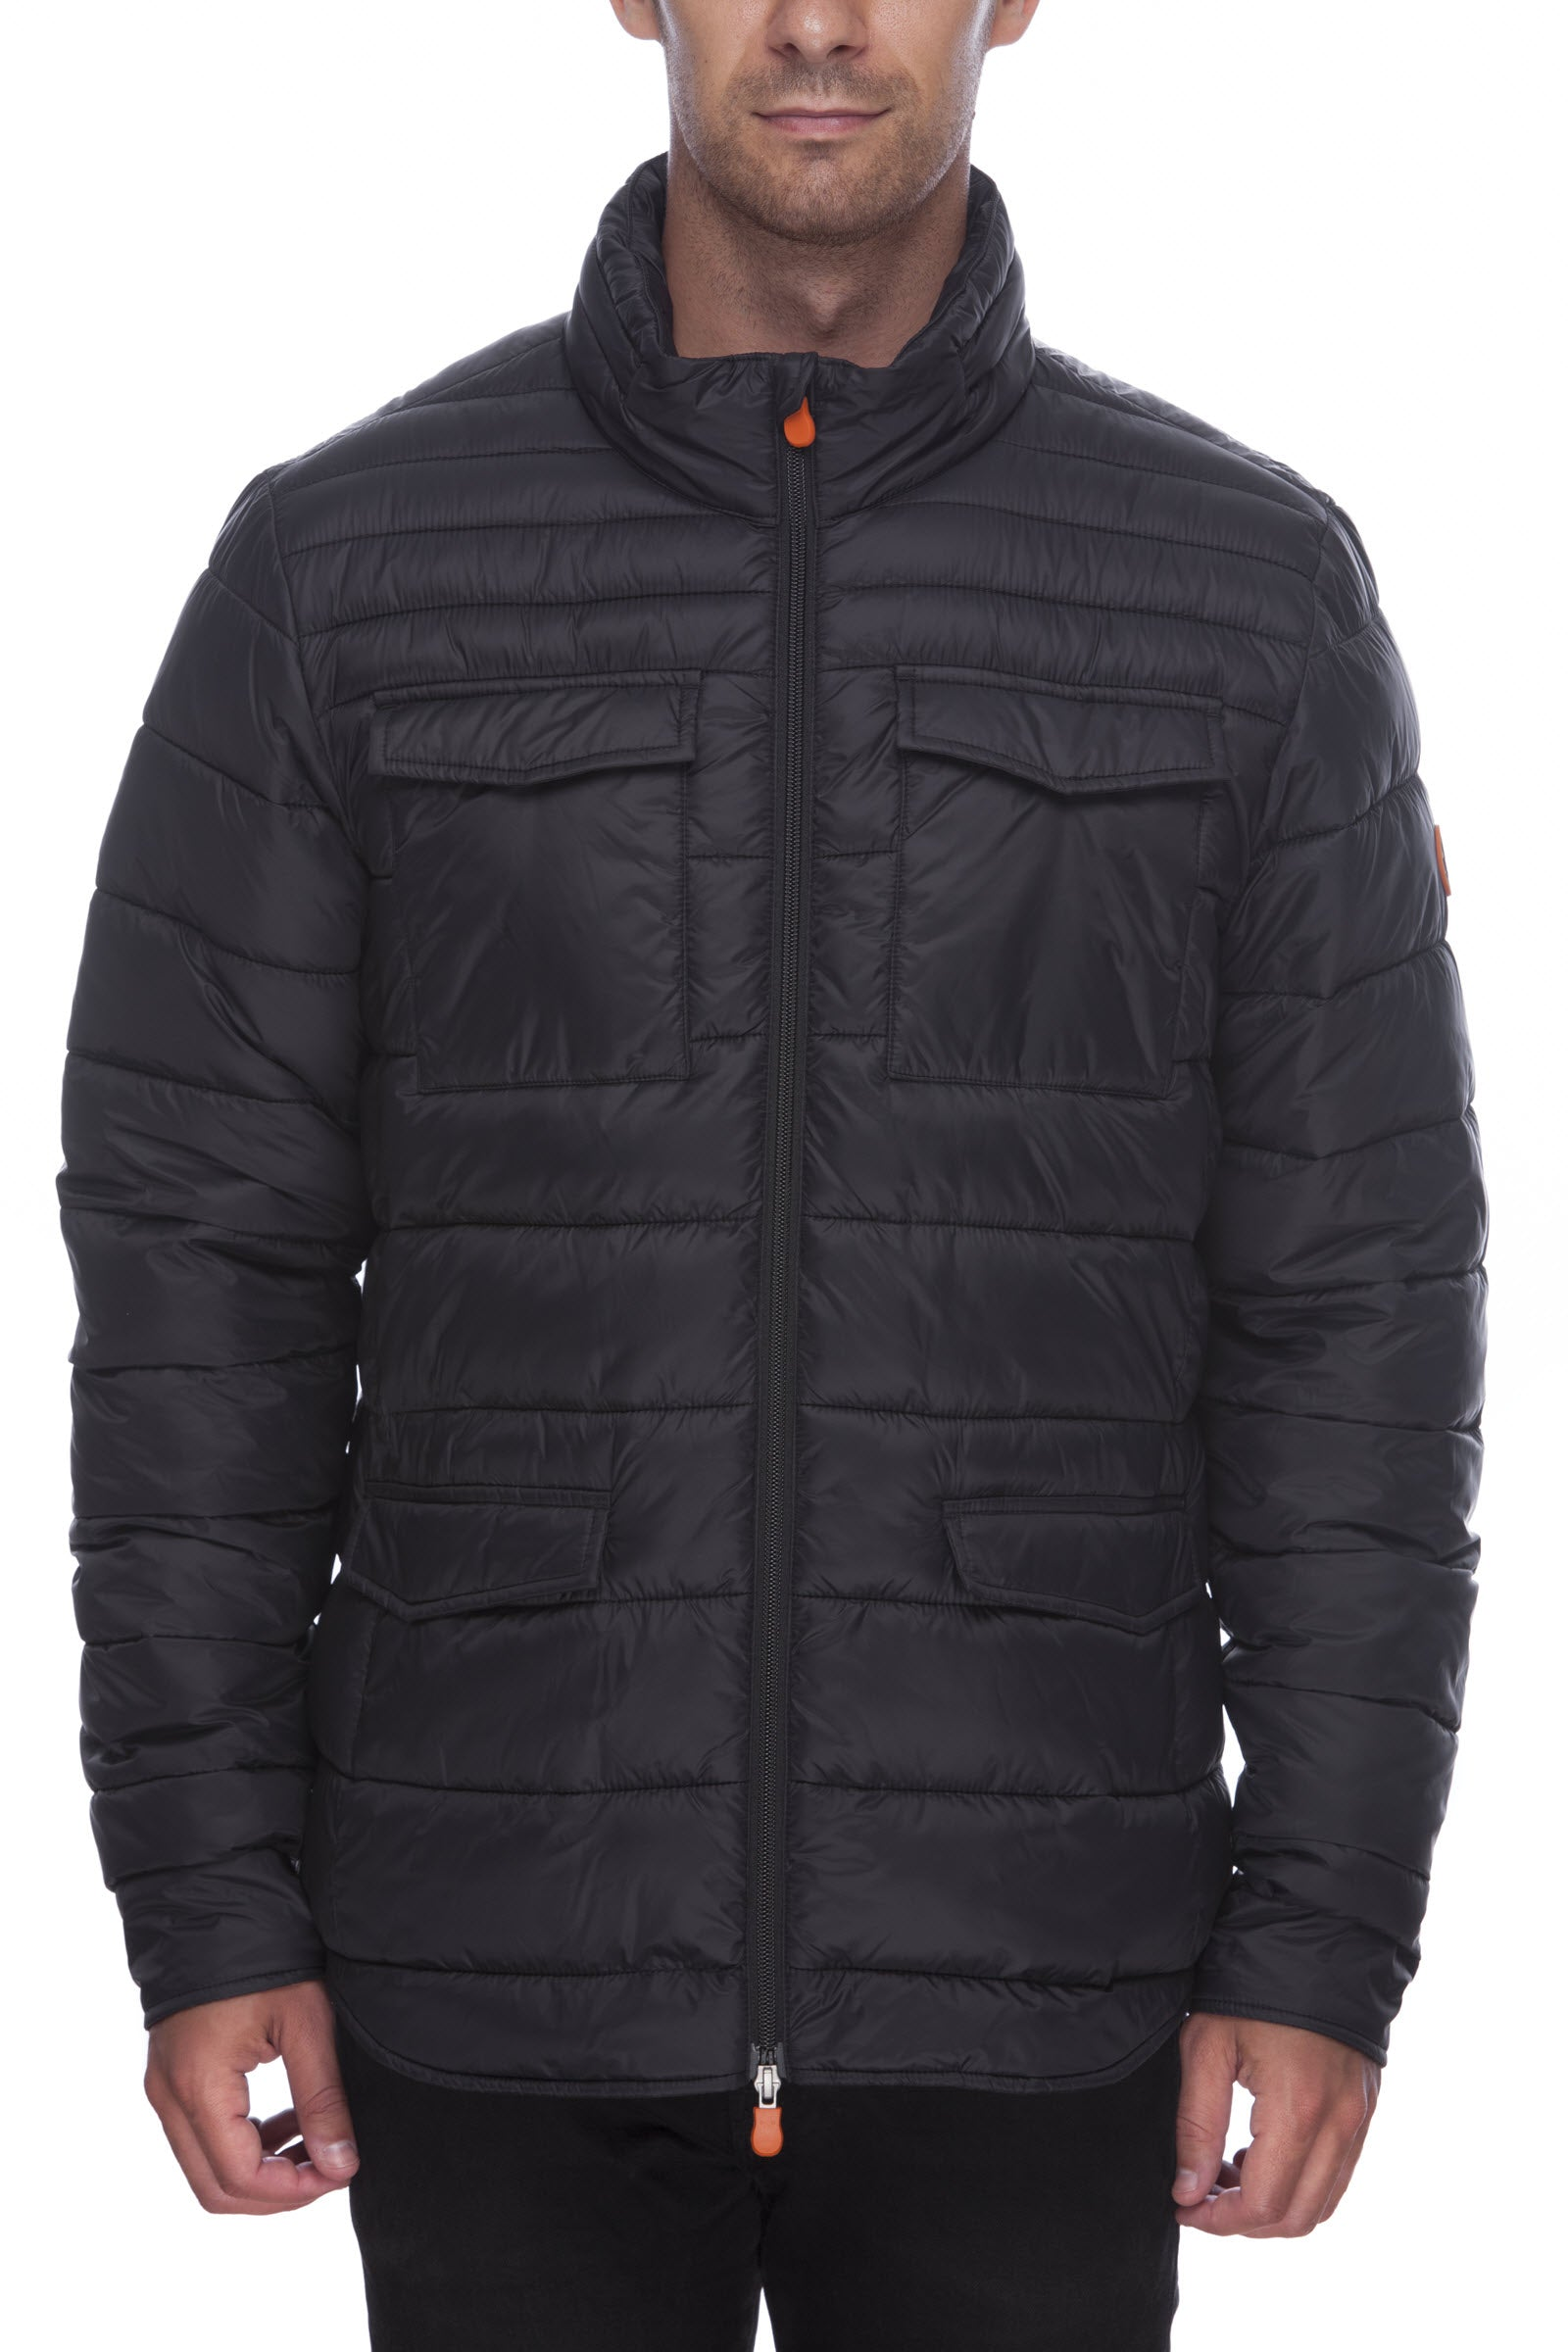 Men's Jacket in Black